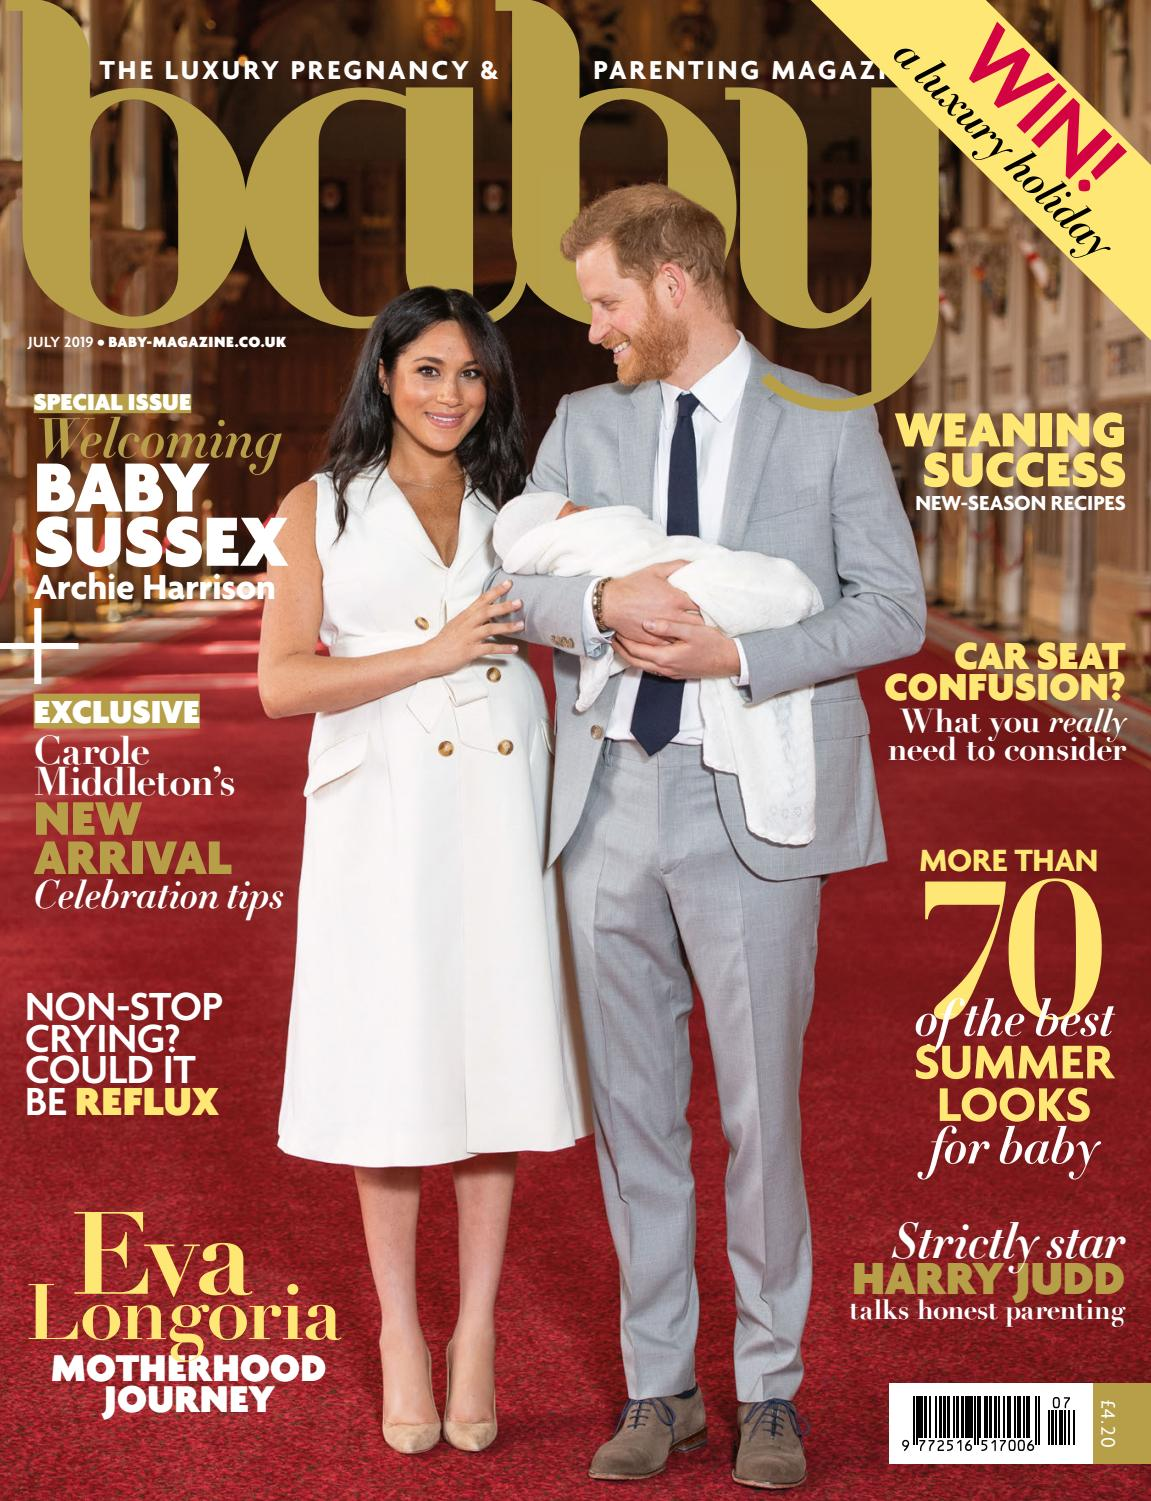 Baby July 2019 by The Chelsea Magazine Company issuu